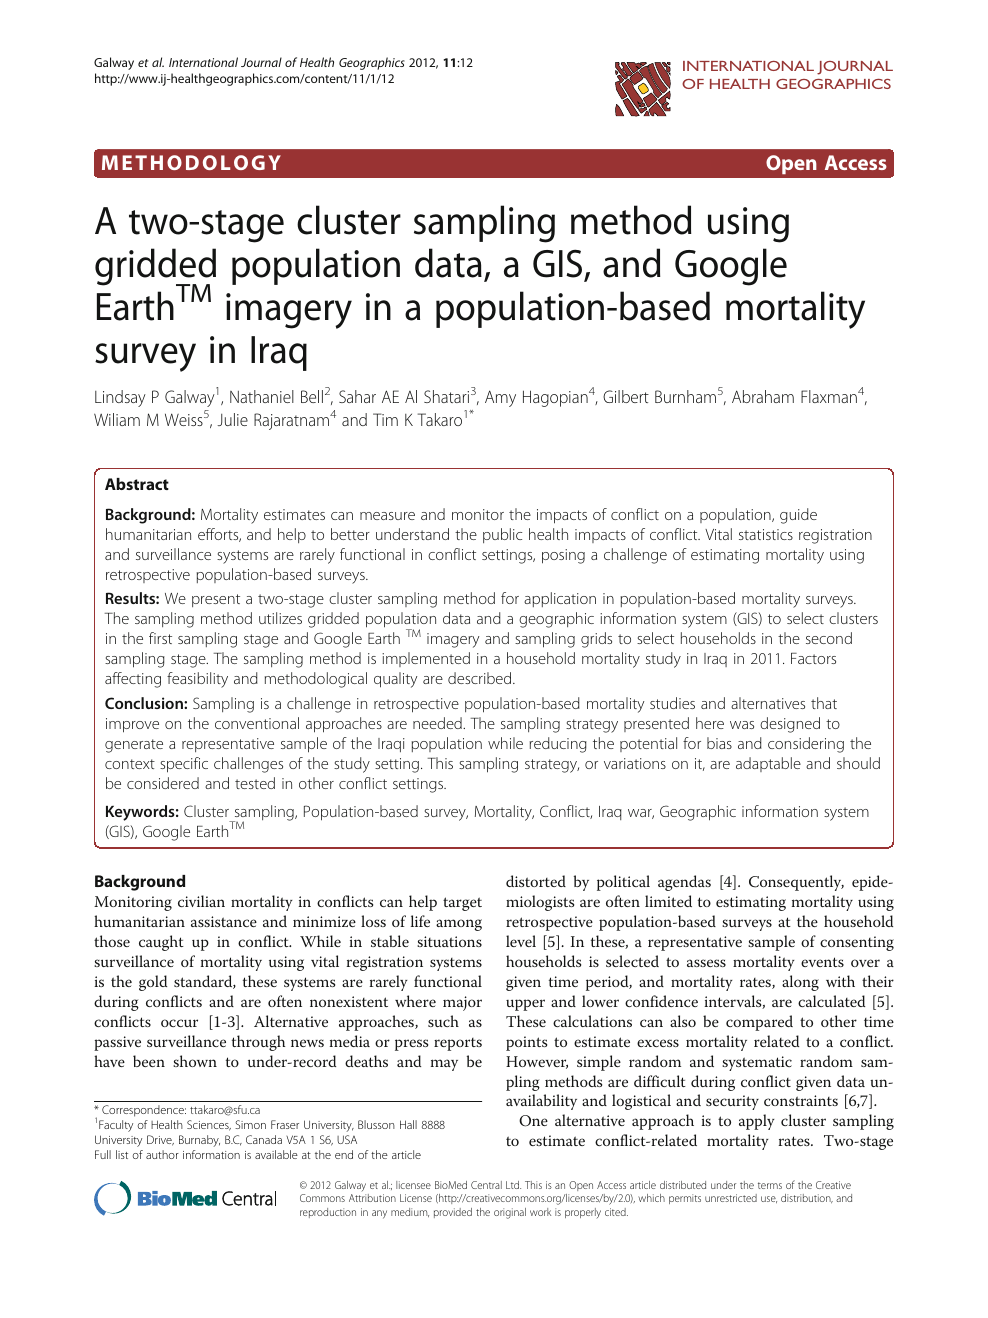 A two-stage cluster sampling method using gridded population